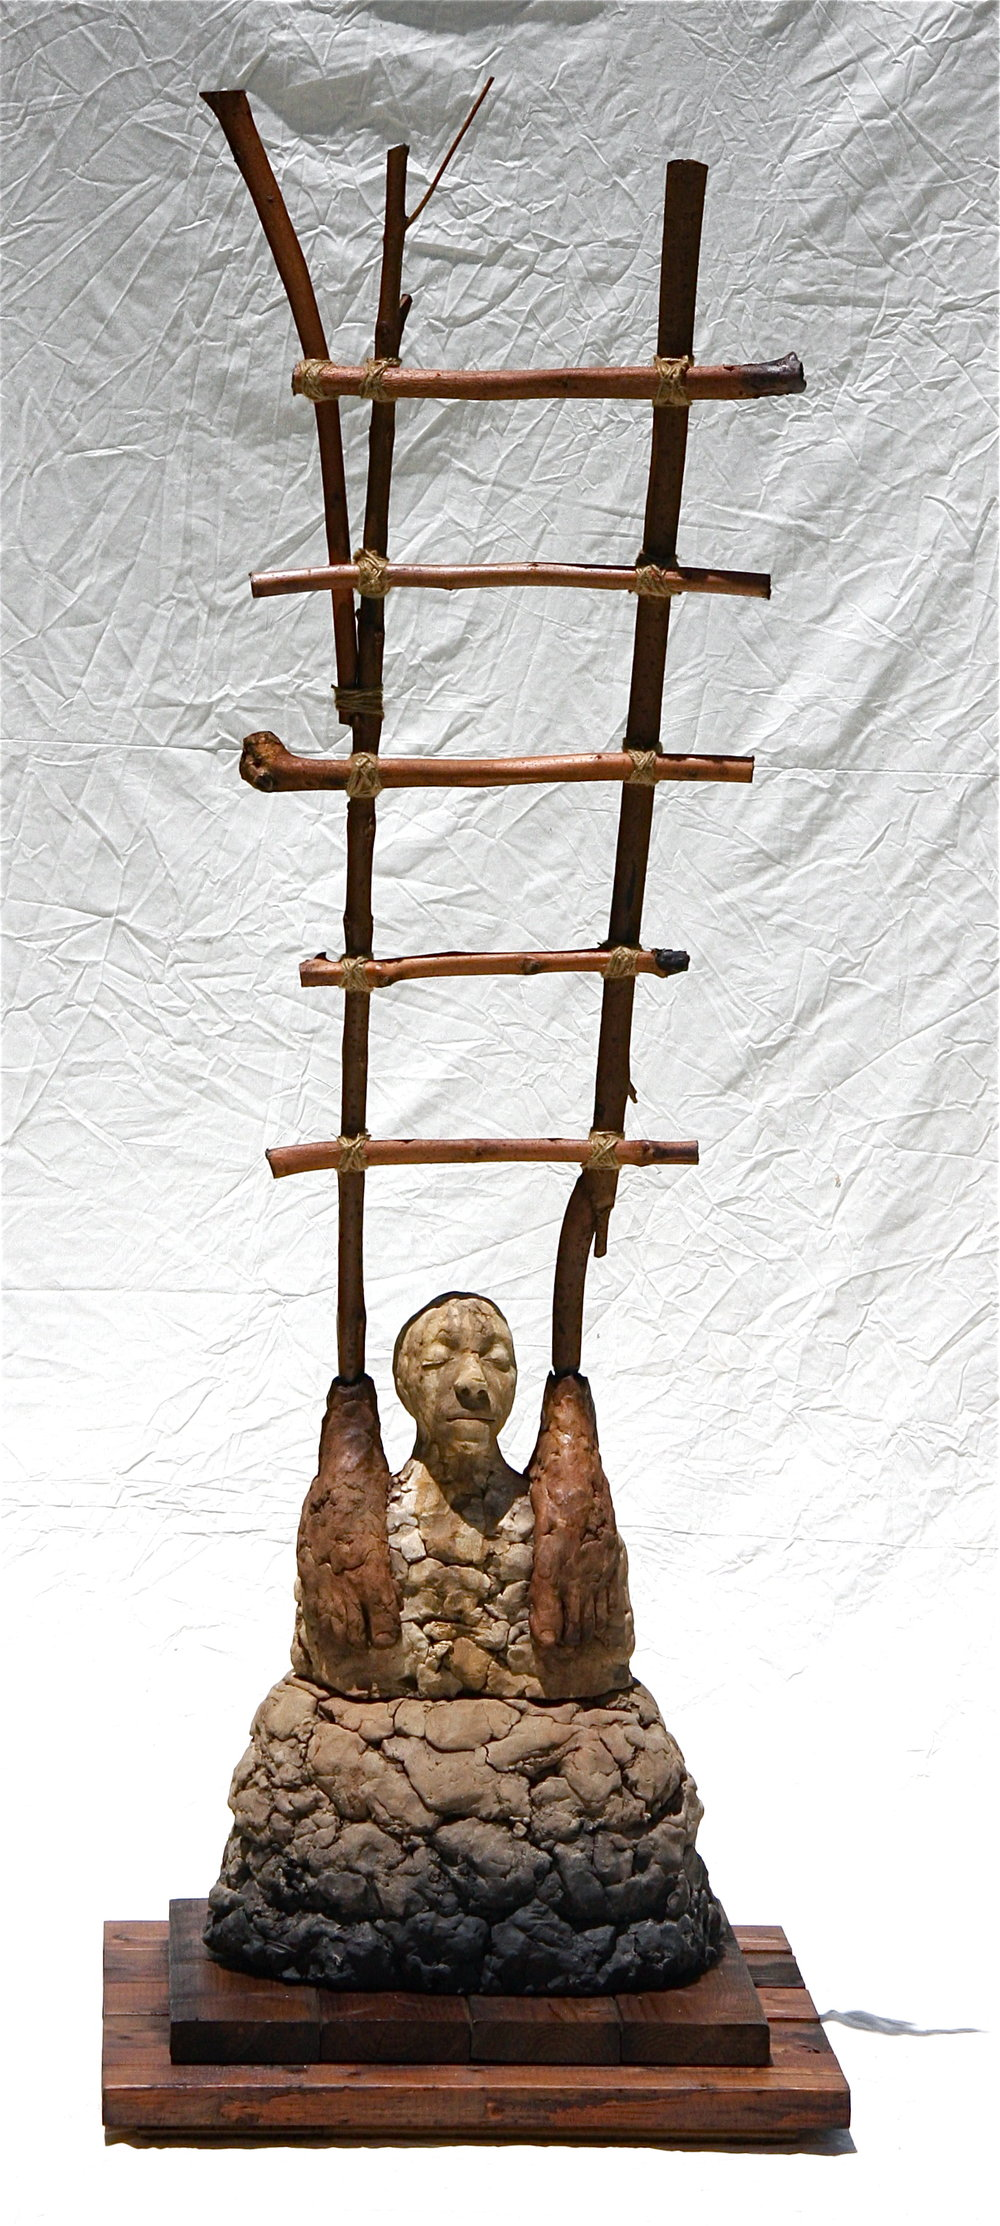 Years of sustaining the ascendant path   2007-2010  Ceramic, wood, branches and twine  71 x 24 x 14